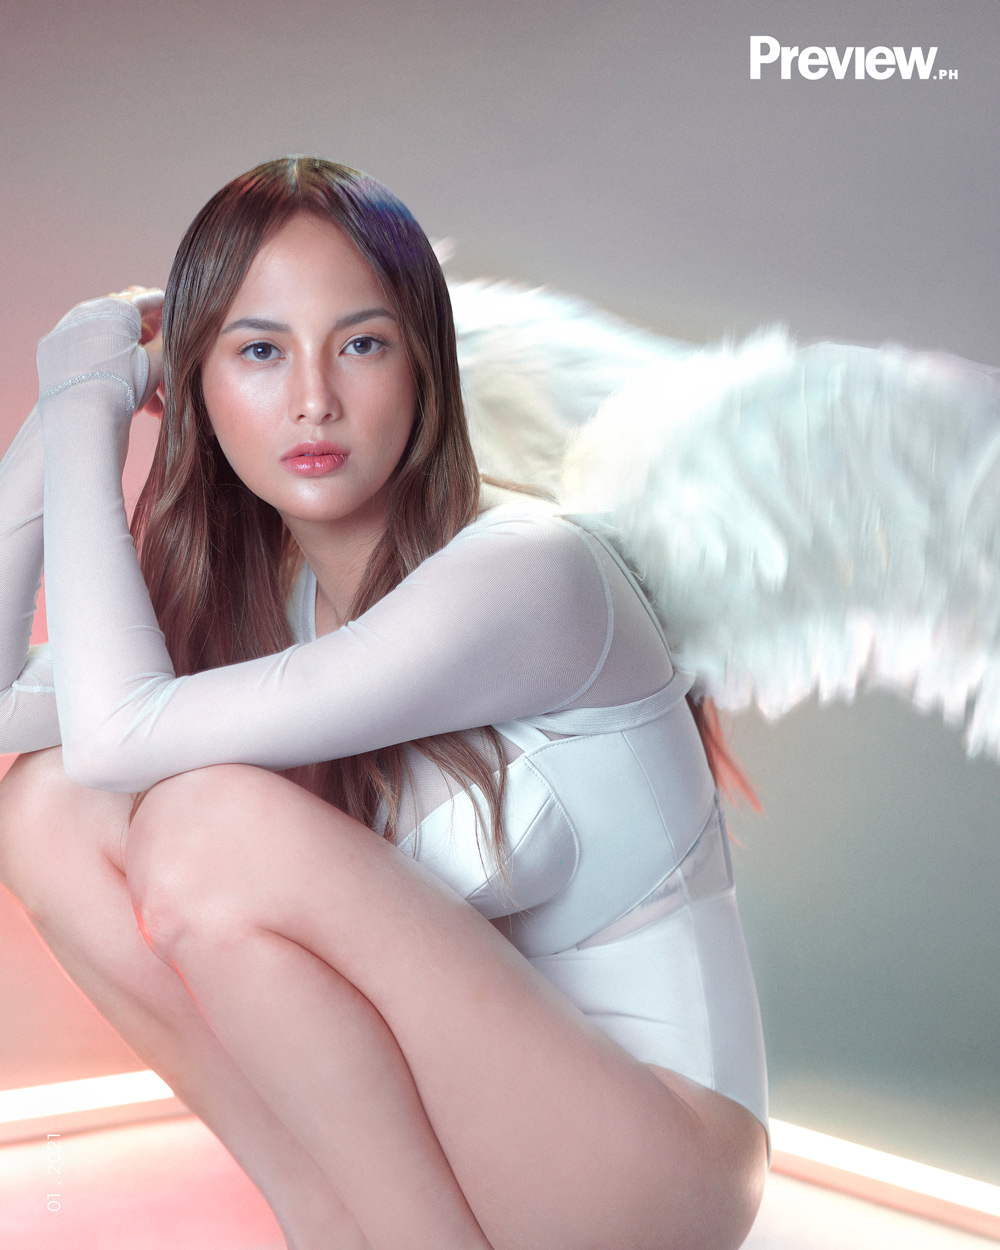 ellen adarna opens up about depression and relationship with john lloyd cruz